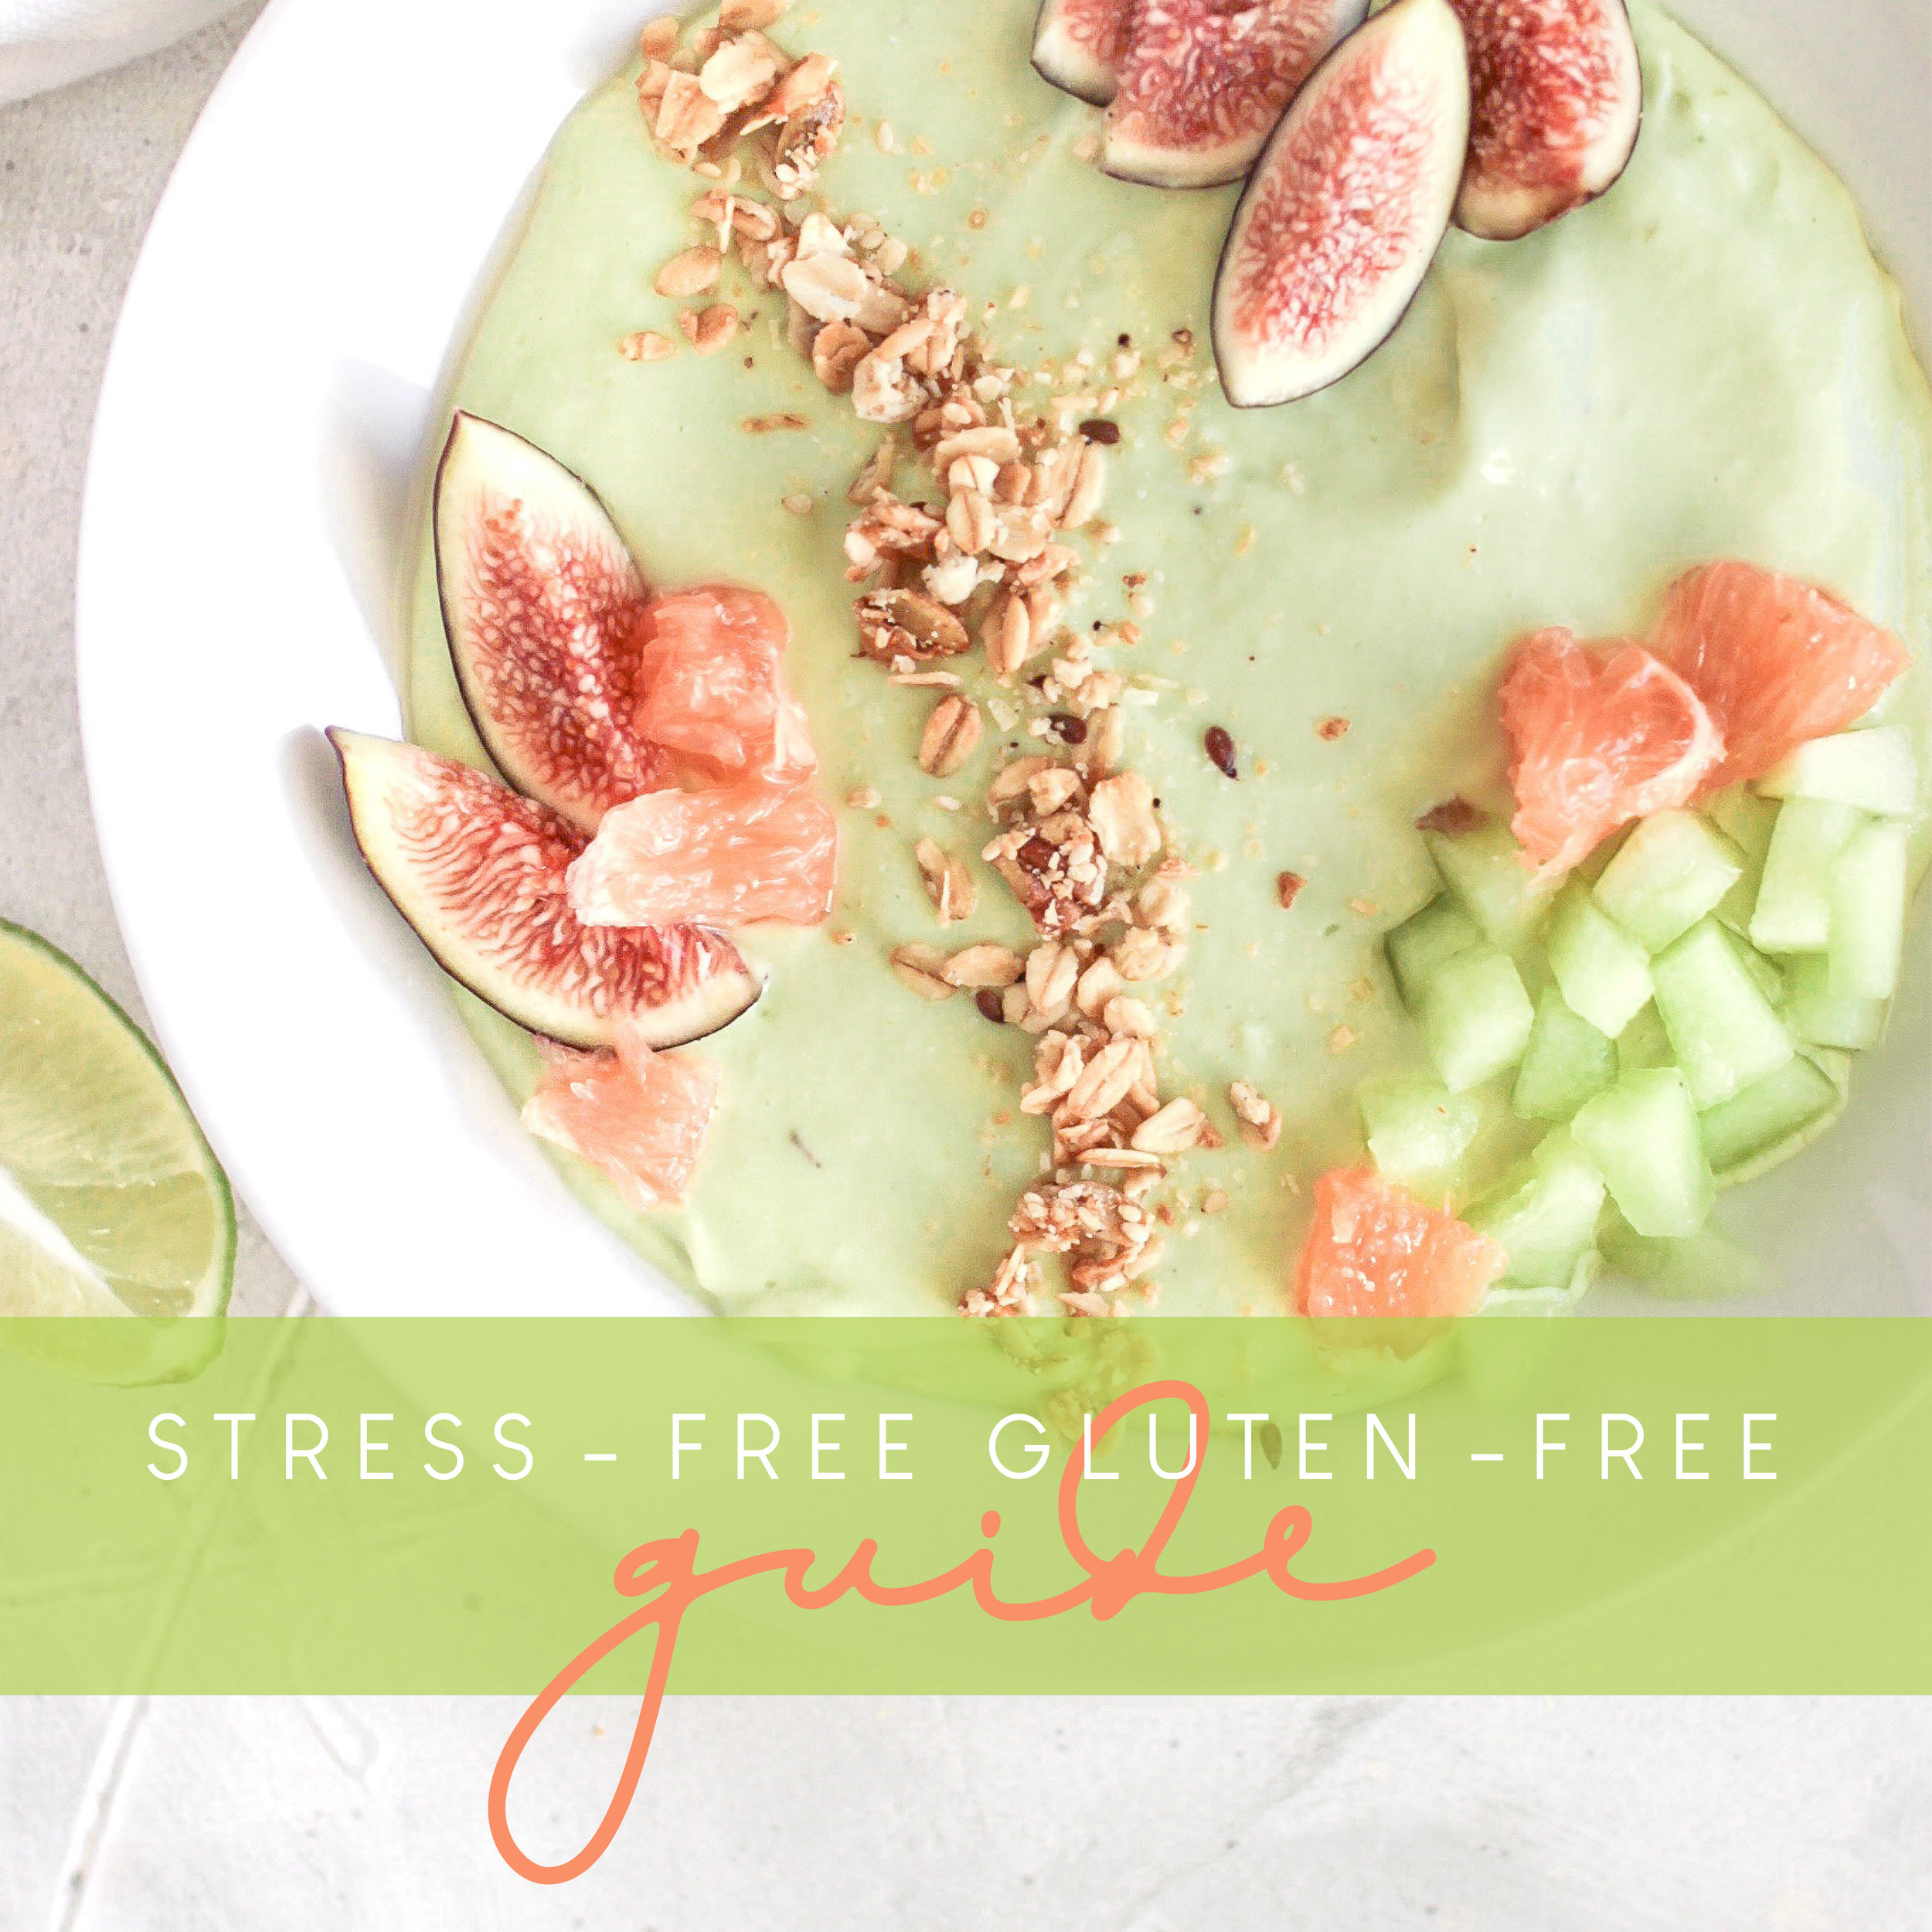 Get the stress-free gluten-free guide here. $35